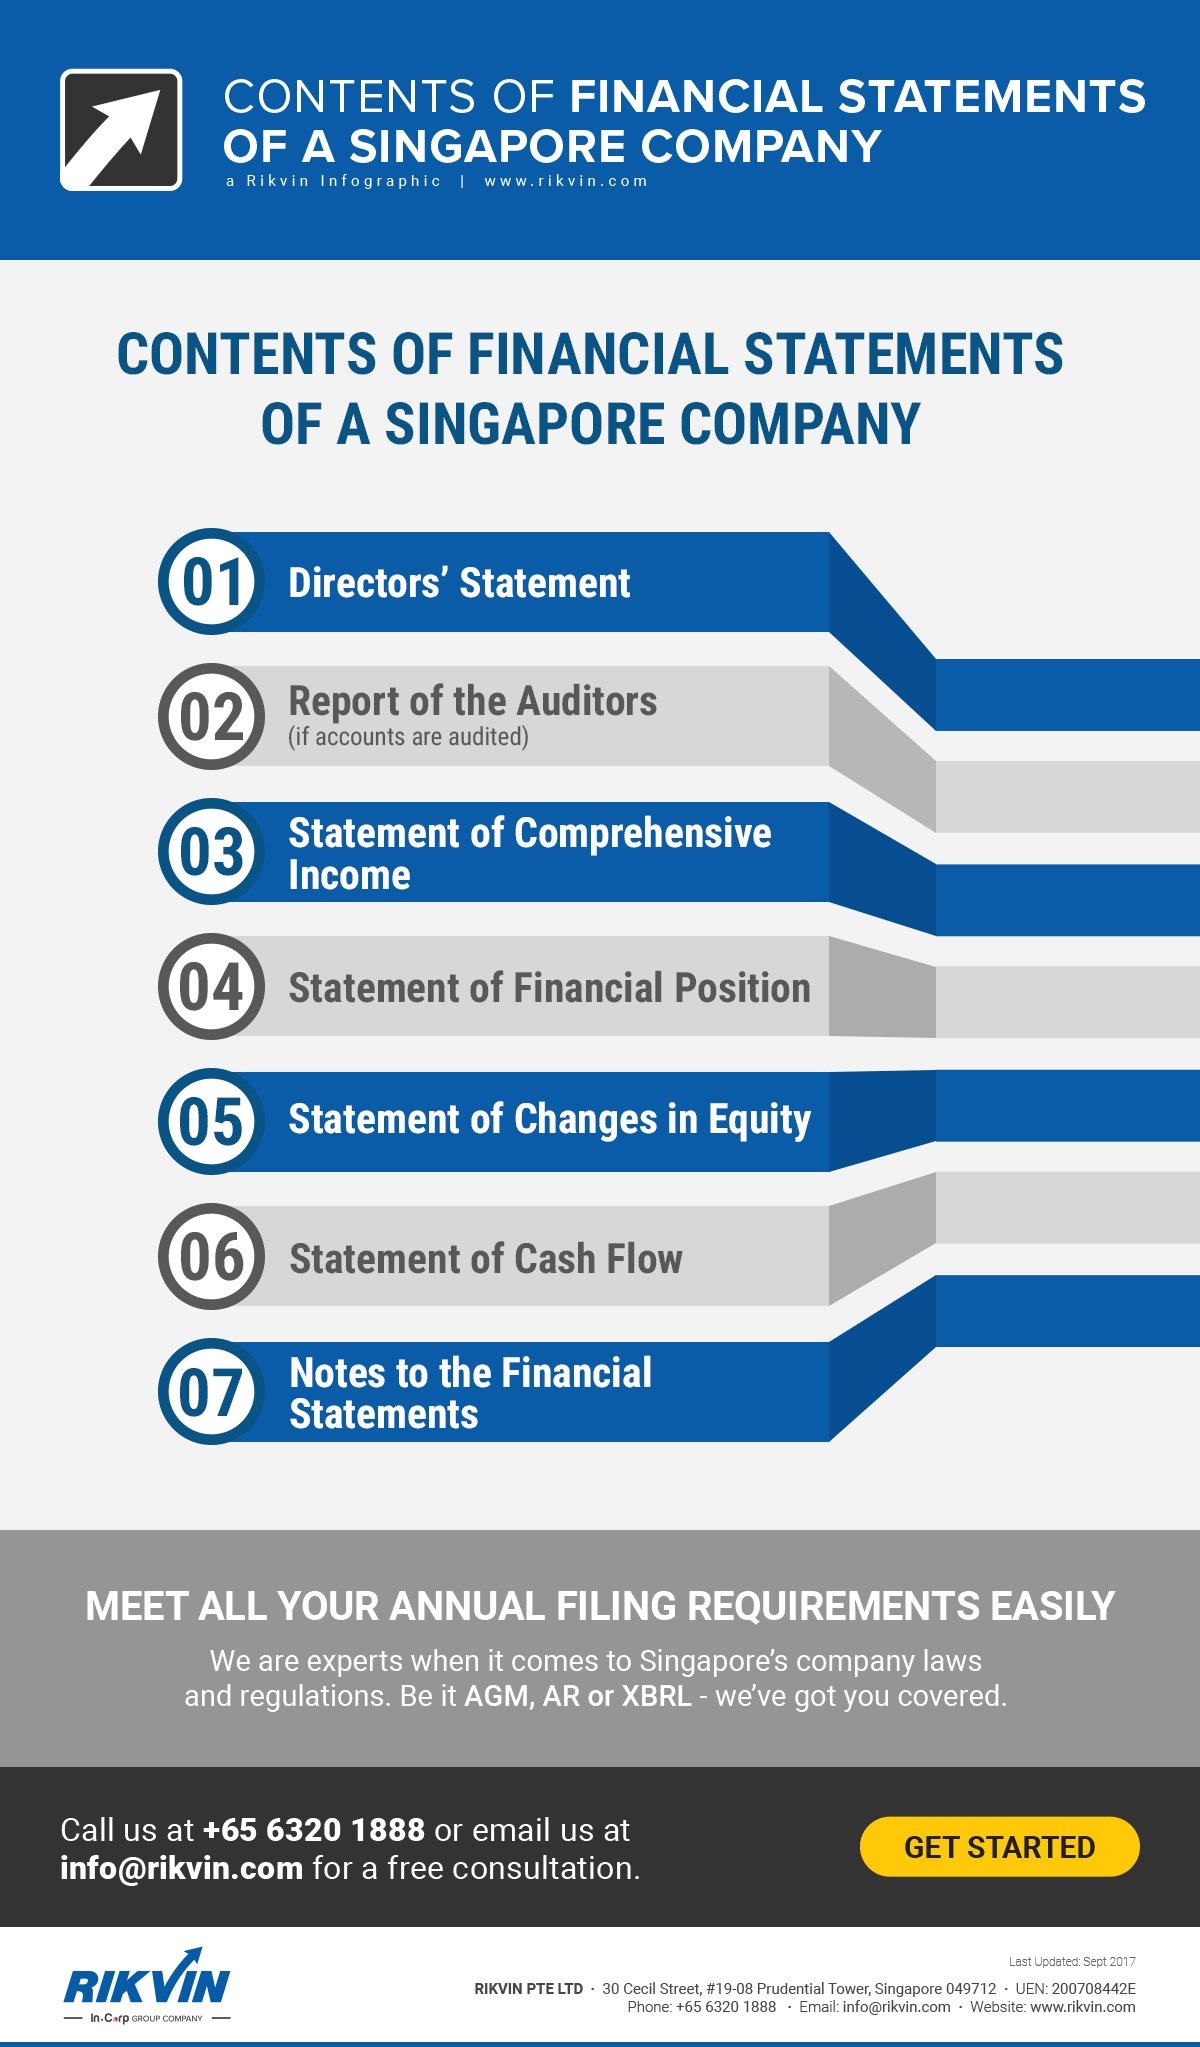 contents-financial-statements-singapore-company Contents of Financial Statements of a Singapore Company